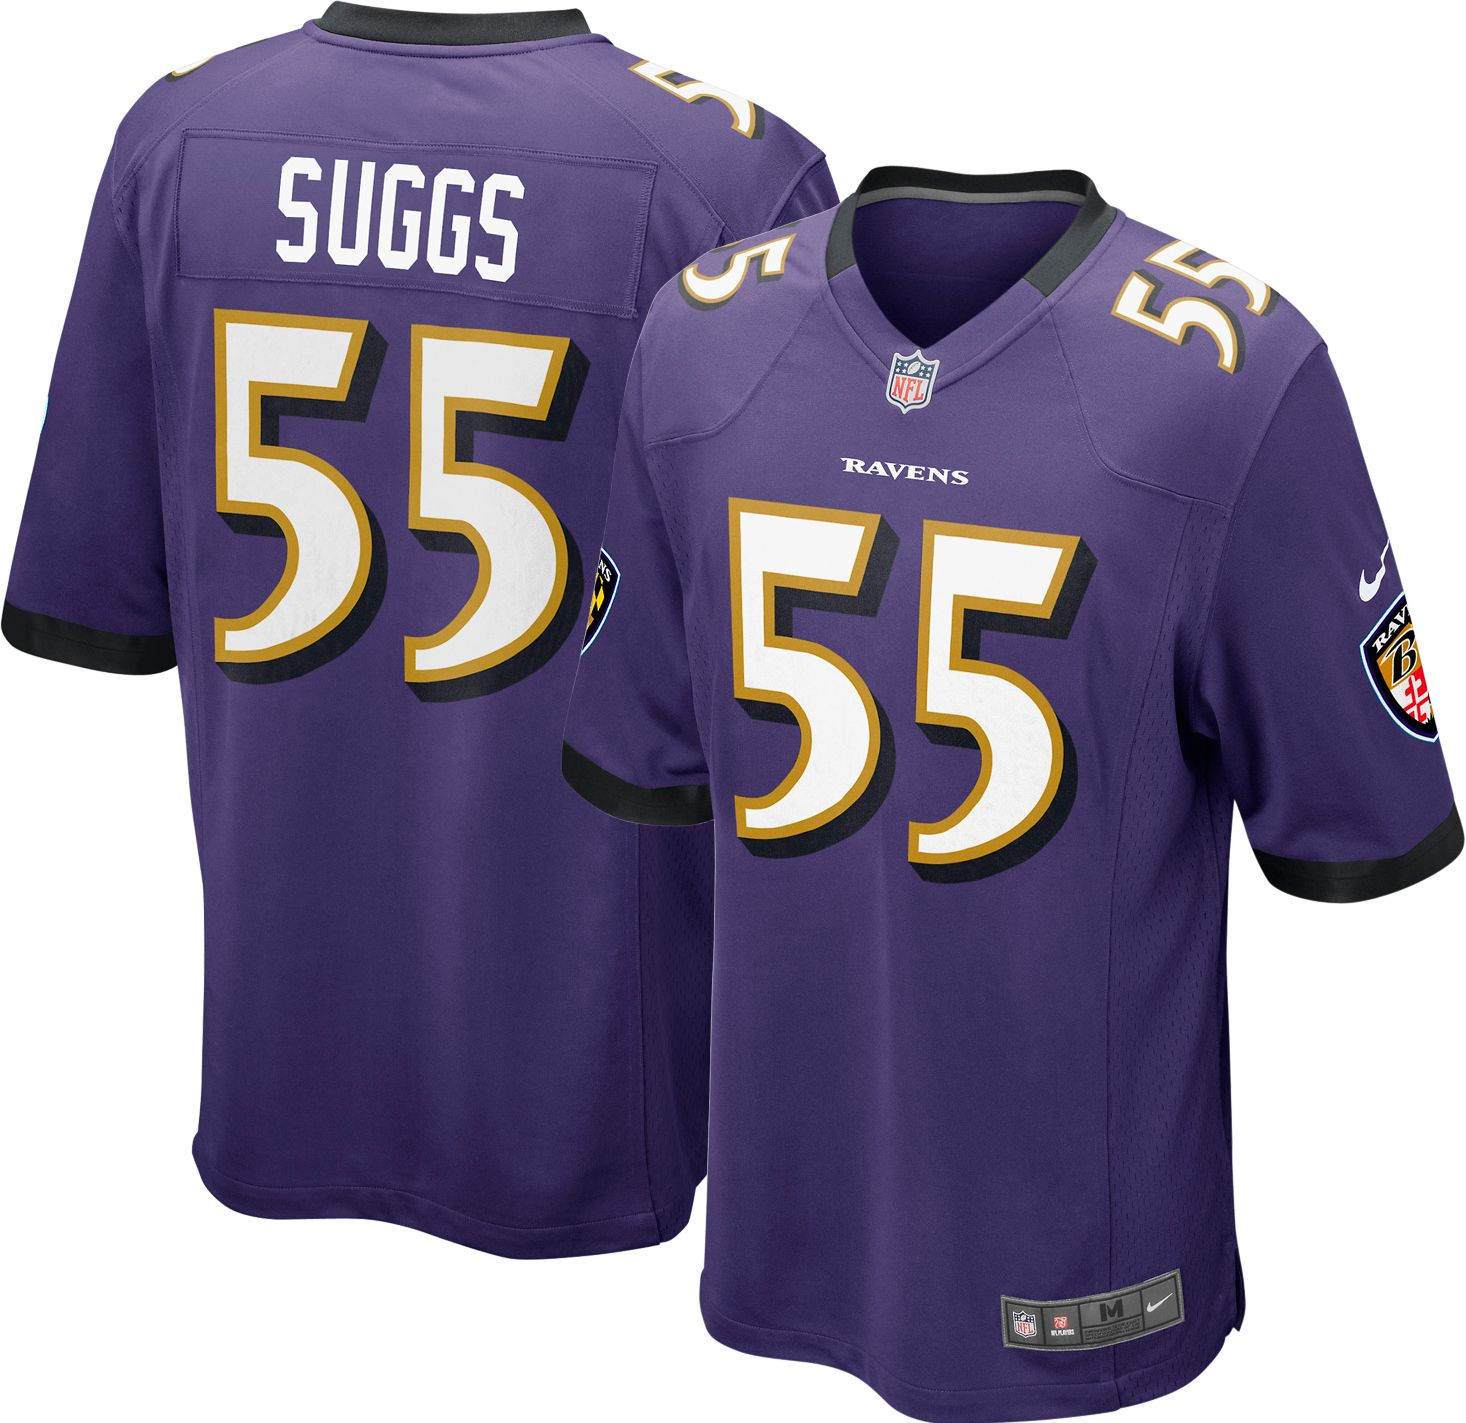 terrell suggs jersey youth